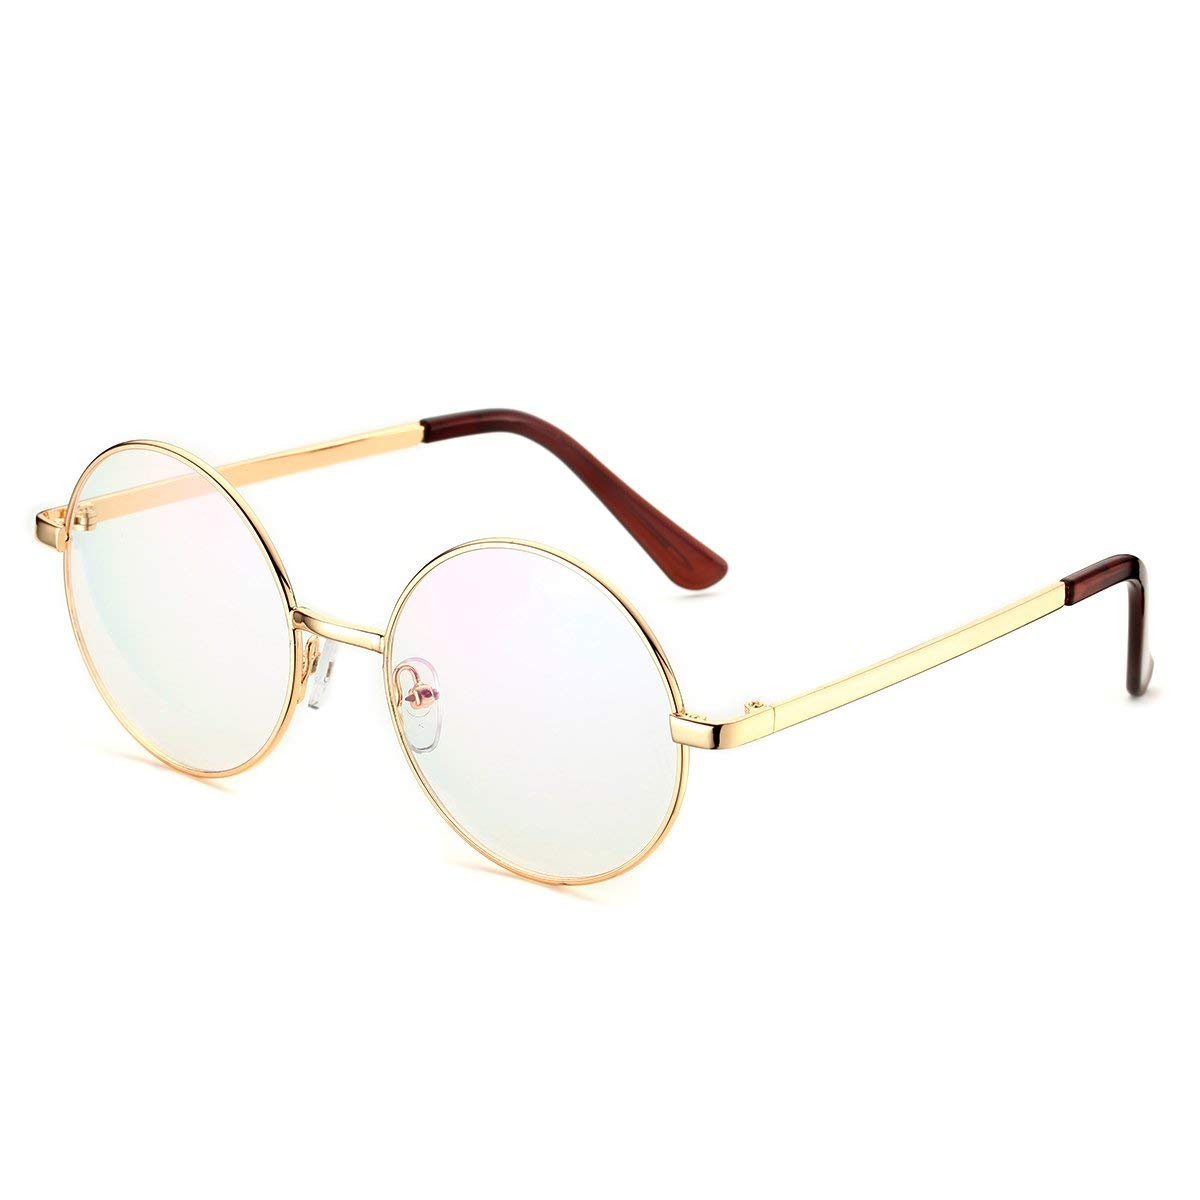 5955310ae8f Get Quotations · PenSee Optical Metal Round Circle Glasses Eyeglasses  Eyewear Frames